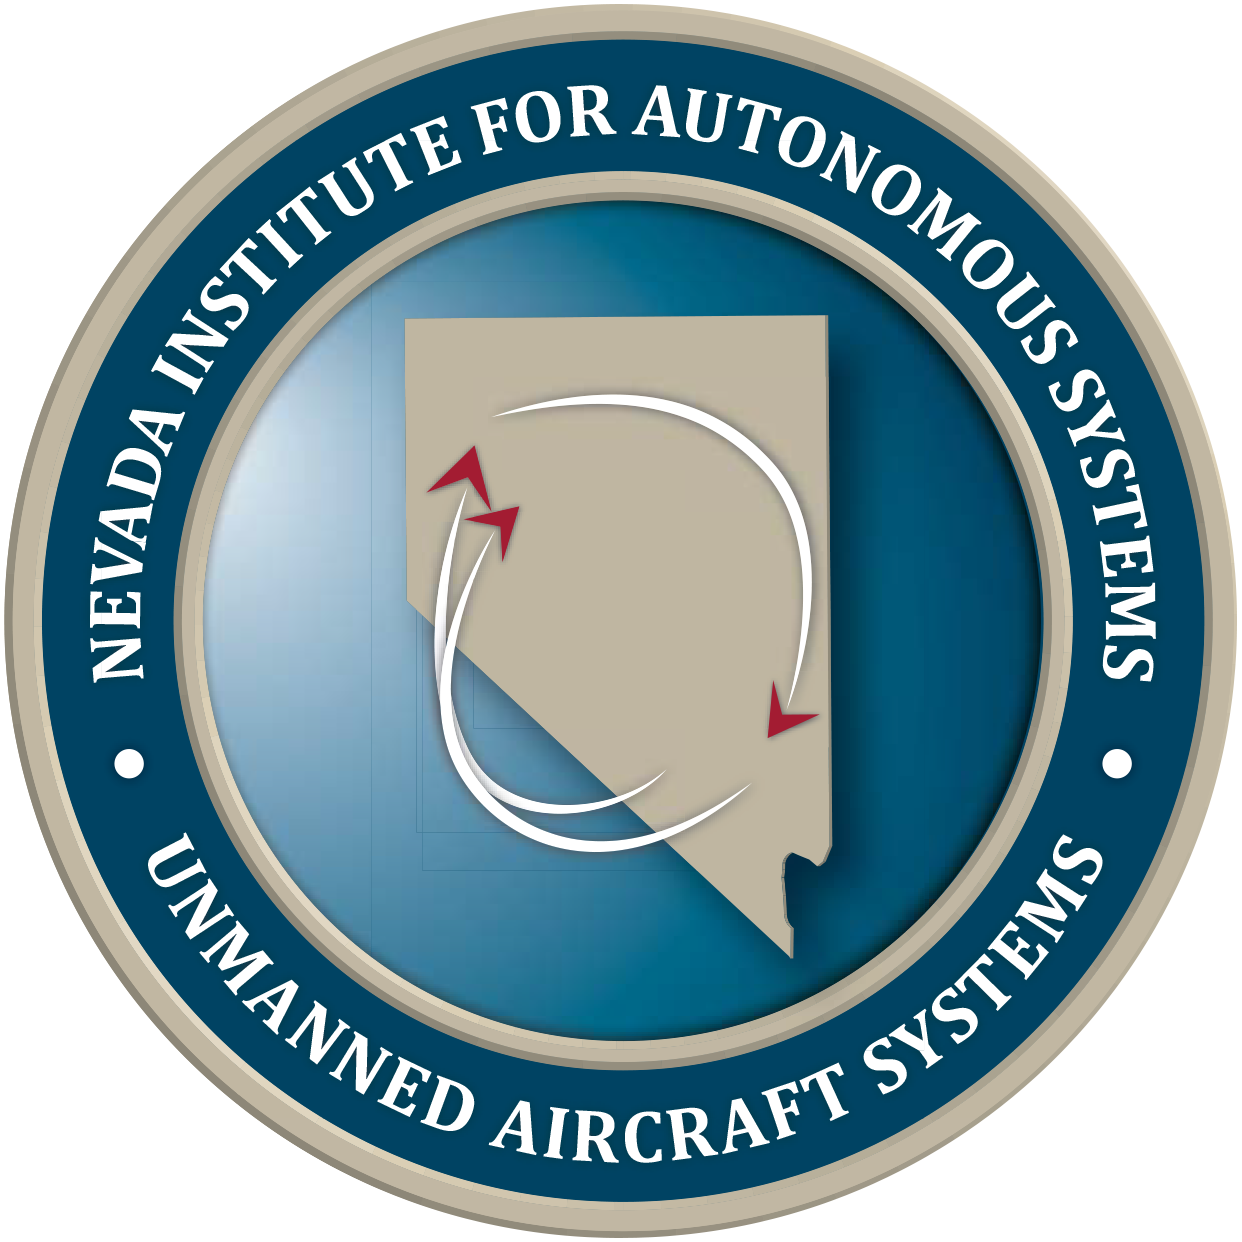 Nevada Institute for Autonomous Systems - Unmanned Aircraft Systems Logo